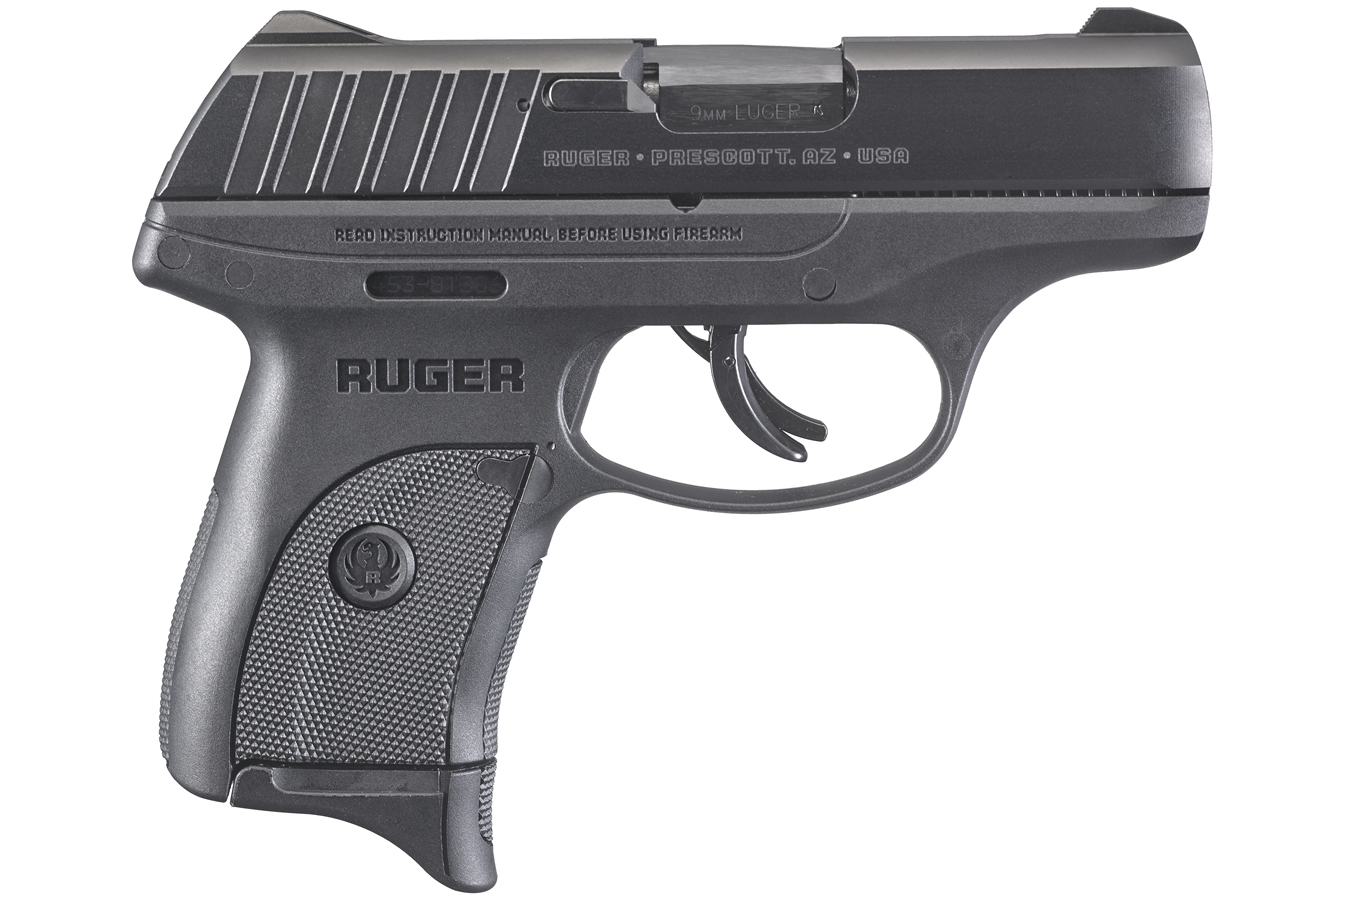 EC9S 9MM STRIKER-FIRED PISTOL